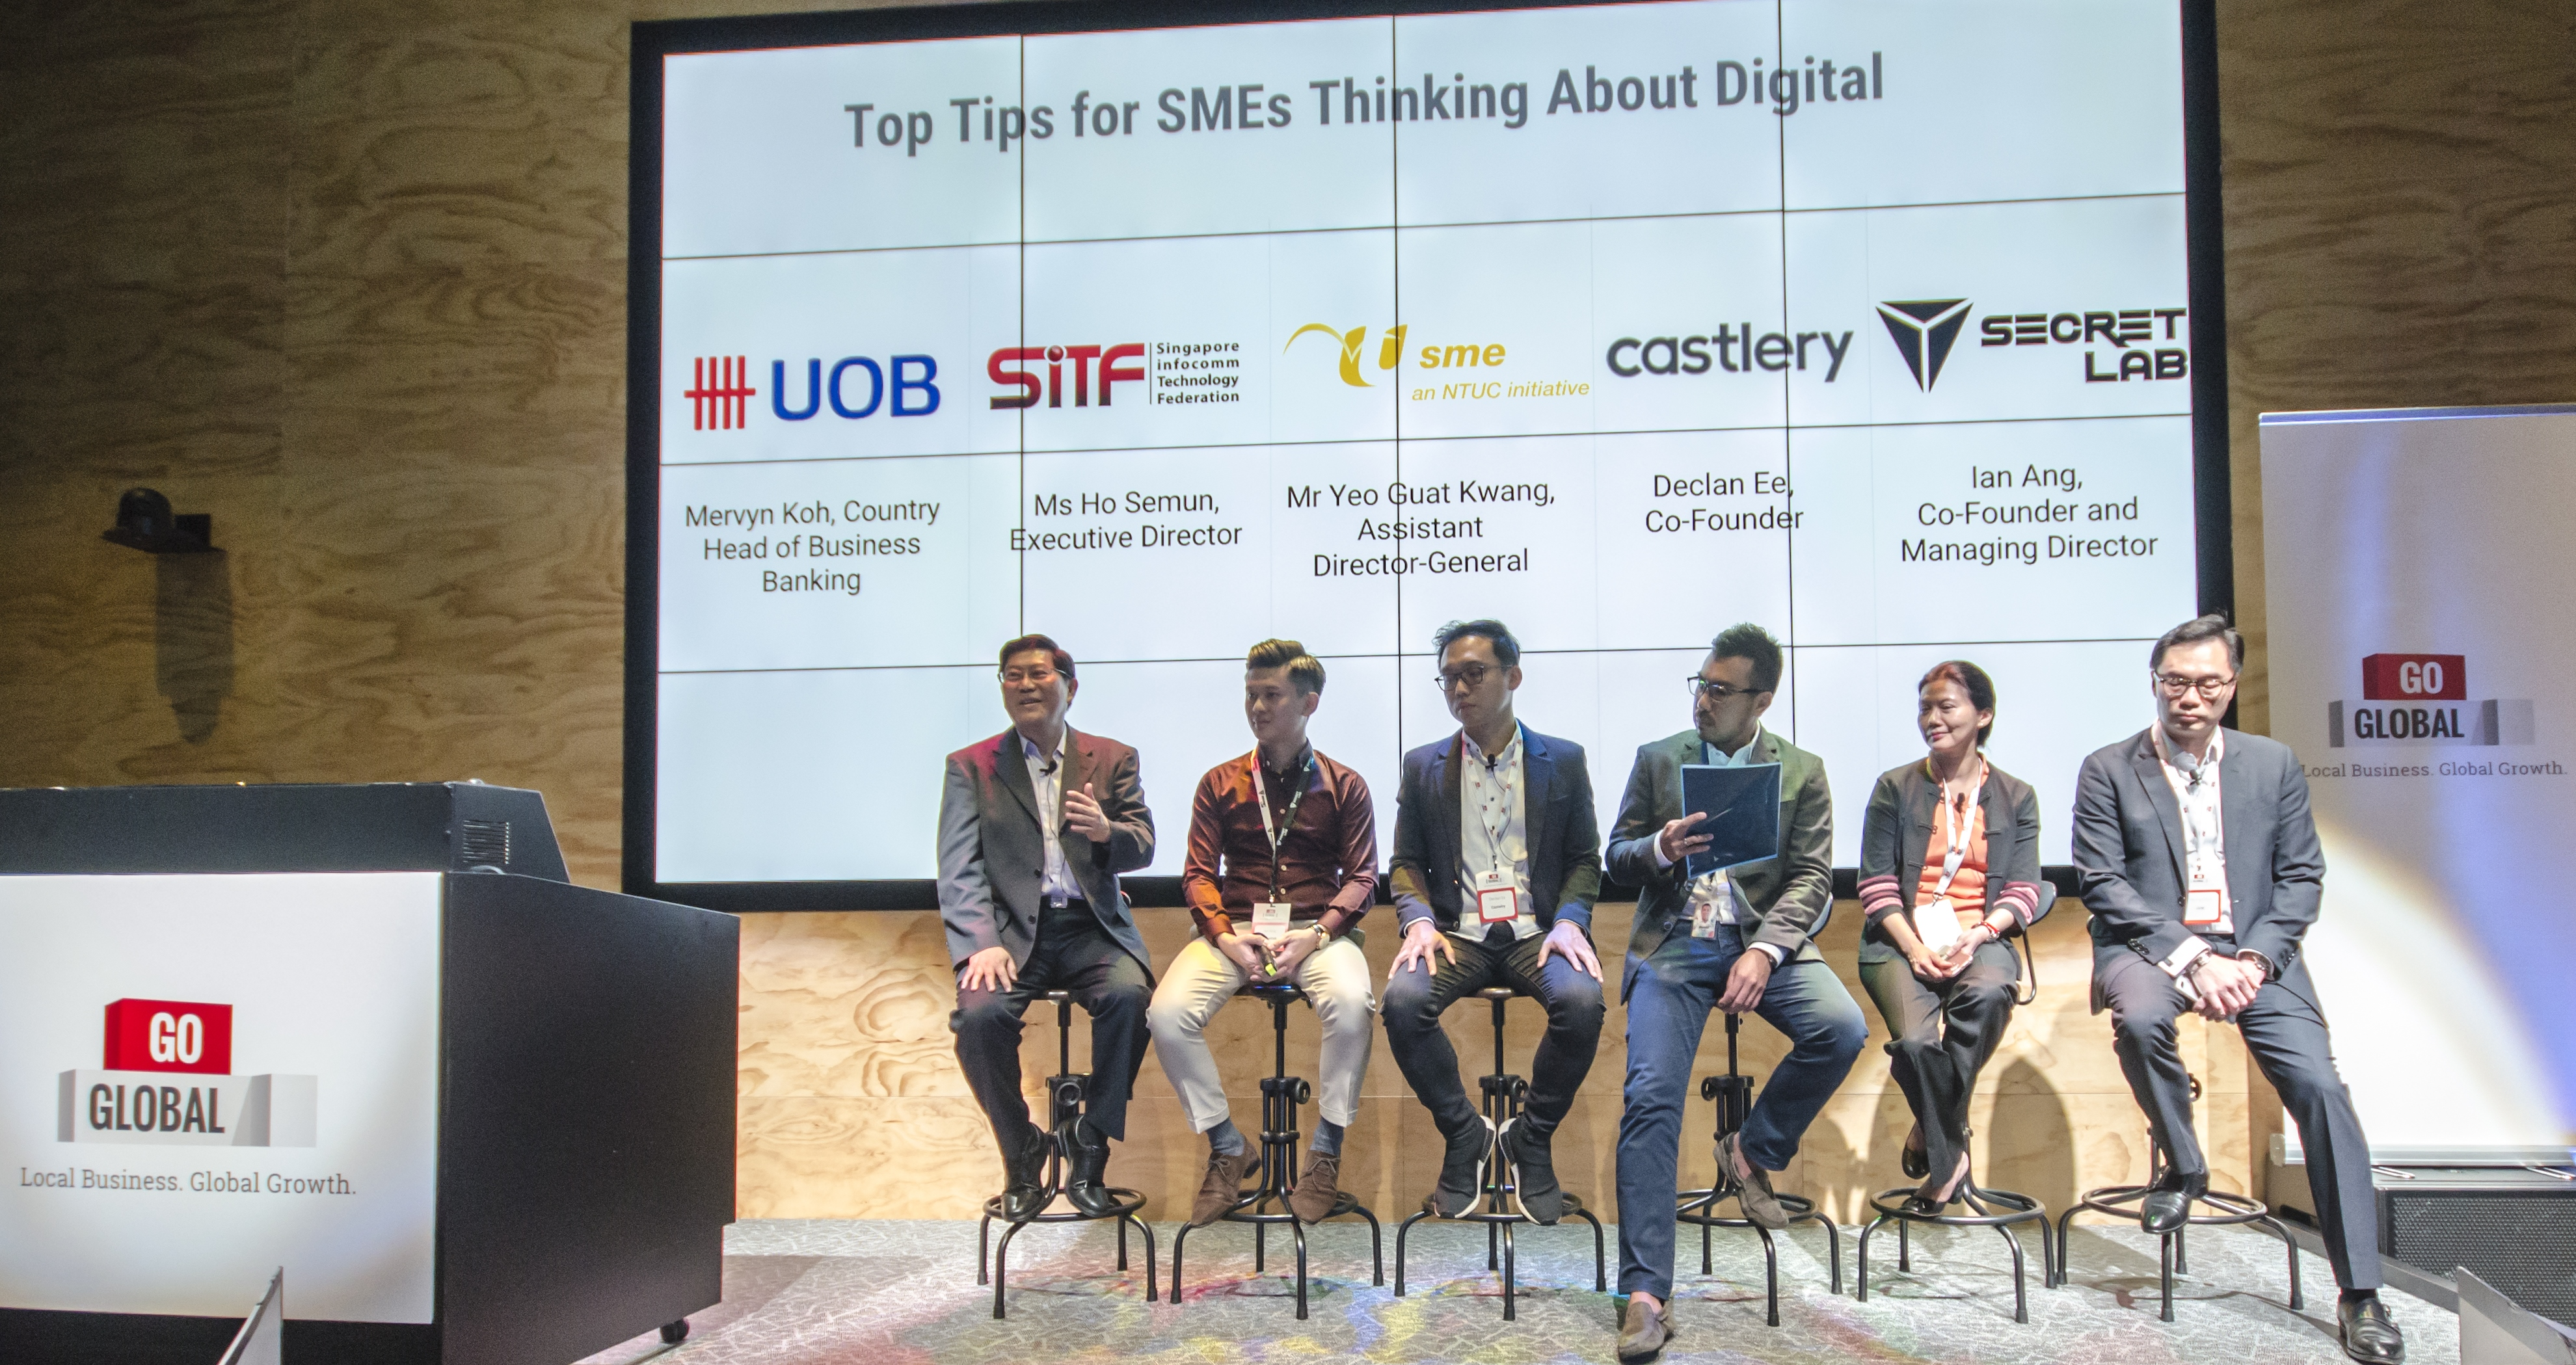 (L - R) Yeo Guat Kwang, Assistant Director-General, NTUC; Ian Ang, Managing Director and Co-founder, Secretlab; Declan Ee, Co-founder, Castlery; Jerald Lee, Regional Sales Manager, Google Marketing Solutions; Ho Semun, Executive Director, SiFT; Mr Mervyn Koh, Managing Director and Country Head of Business Banking, Singapore UOB Photo courtesy: Google